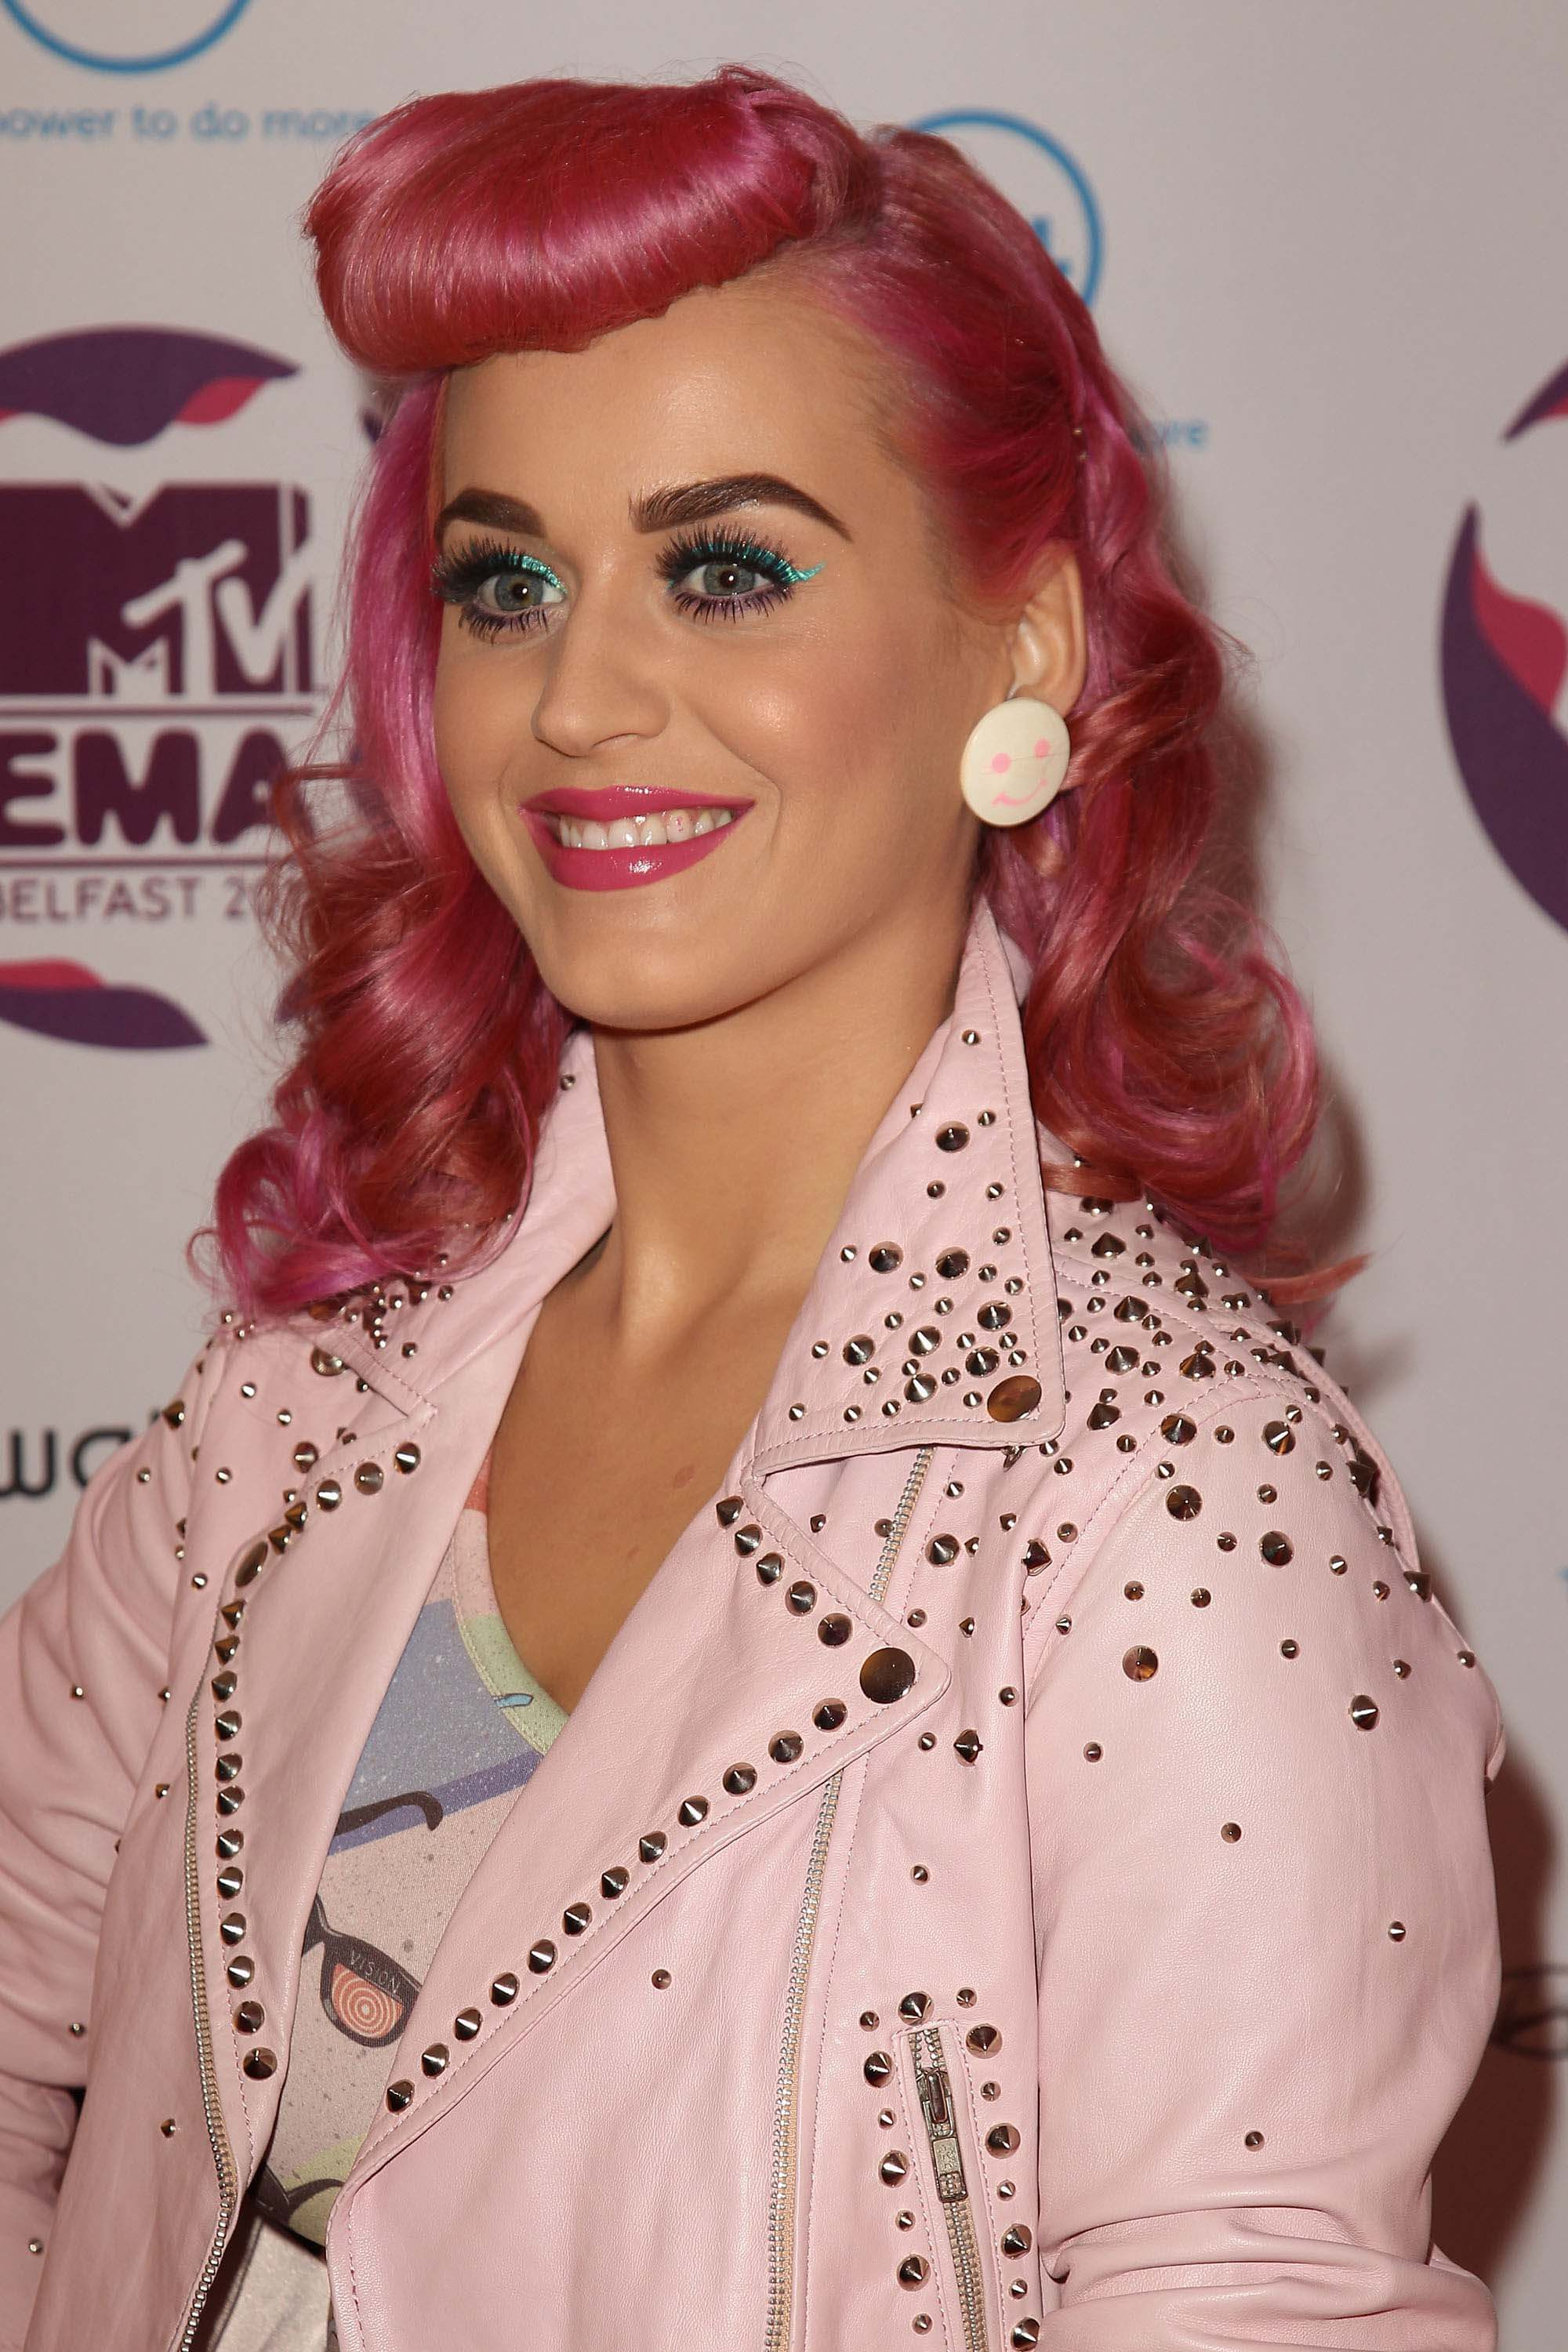 Katy perry hot pink hair